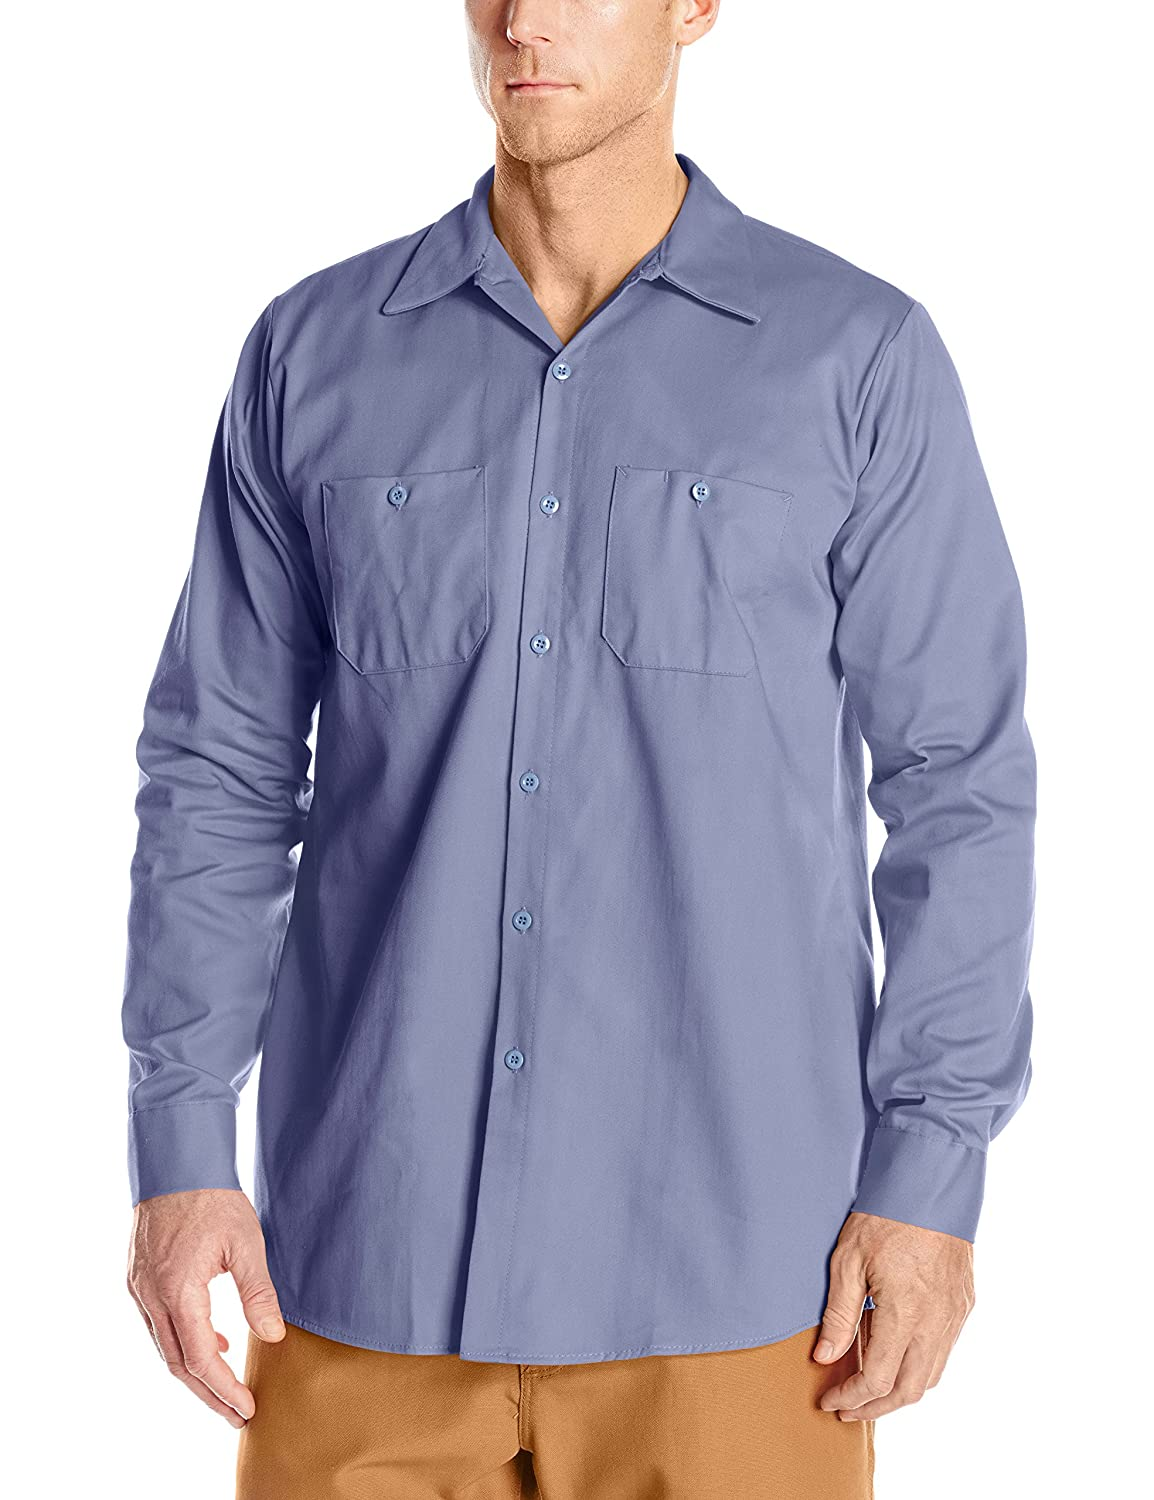 Red Kap Men's Wrinkle Resistant Work Shirt Red Kap Men's Apparel SC30